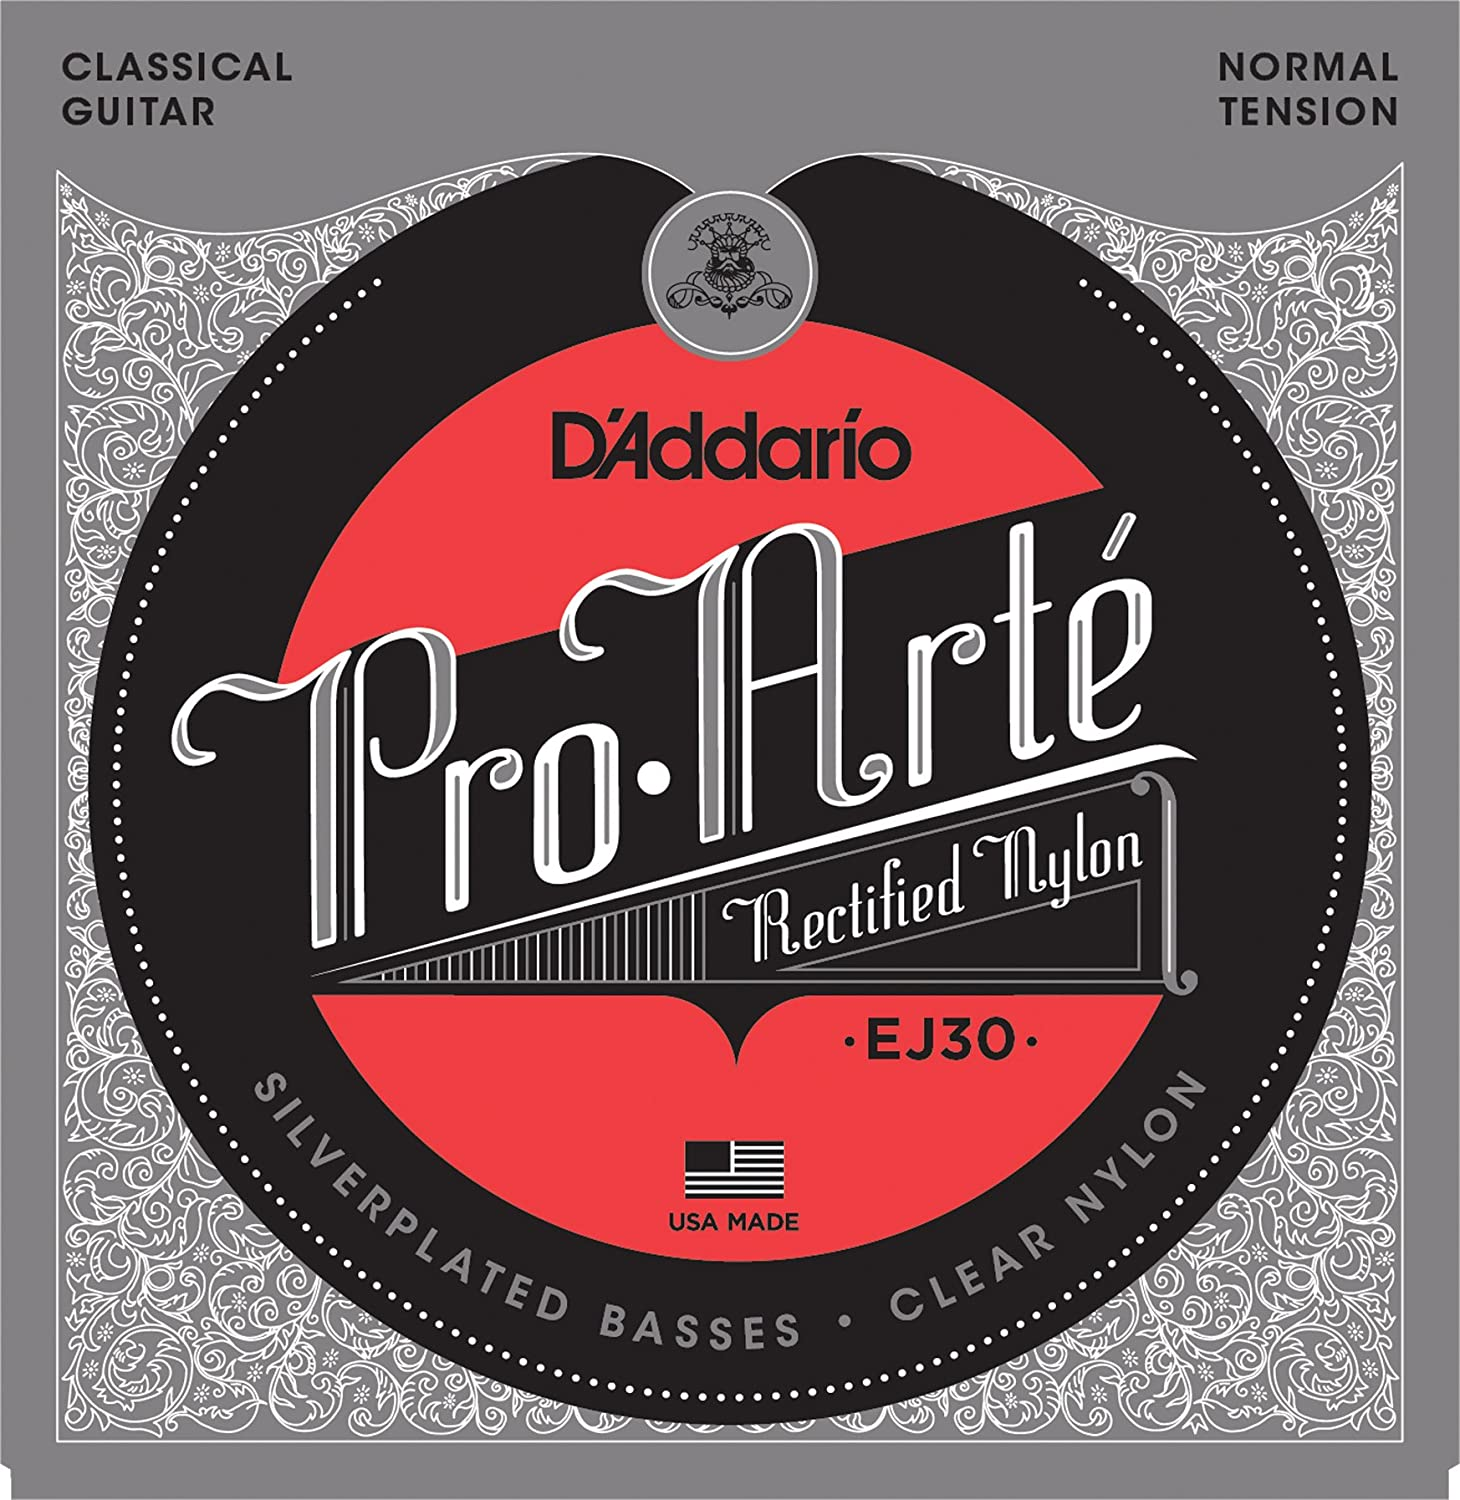 Top 7 Best Classical Guitar Strings Reviews in 2020 6